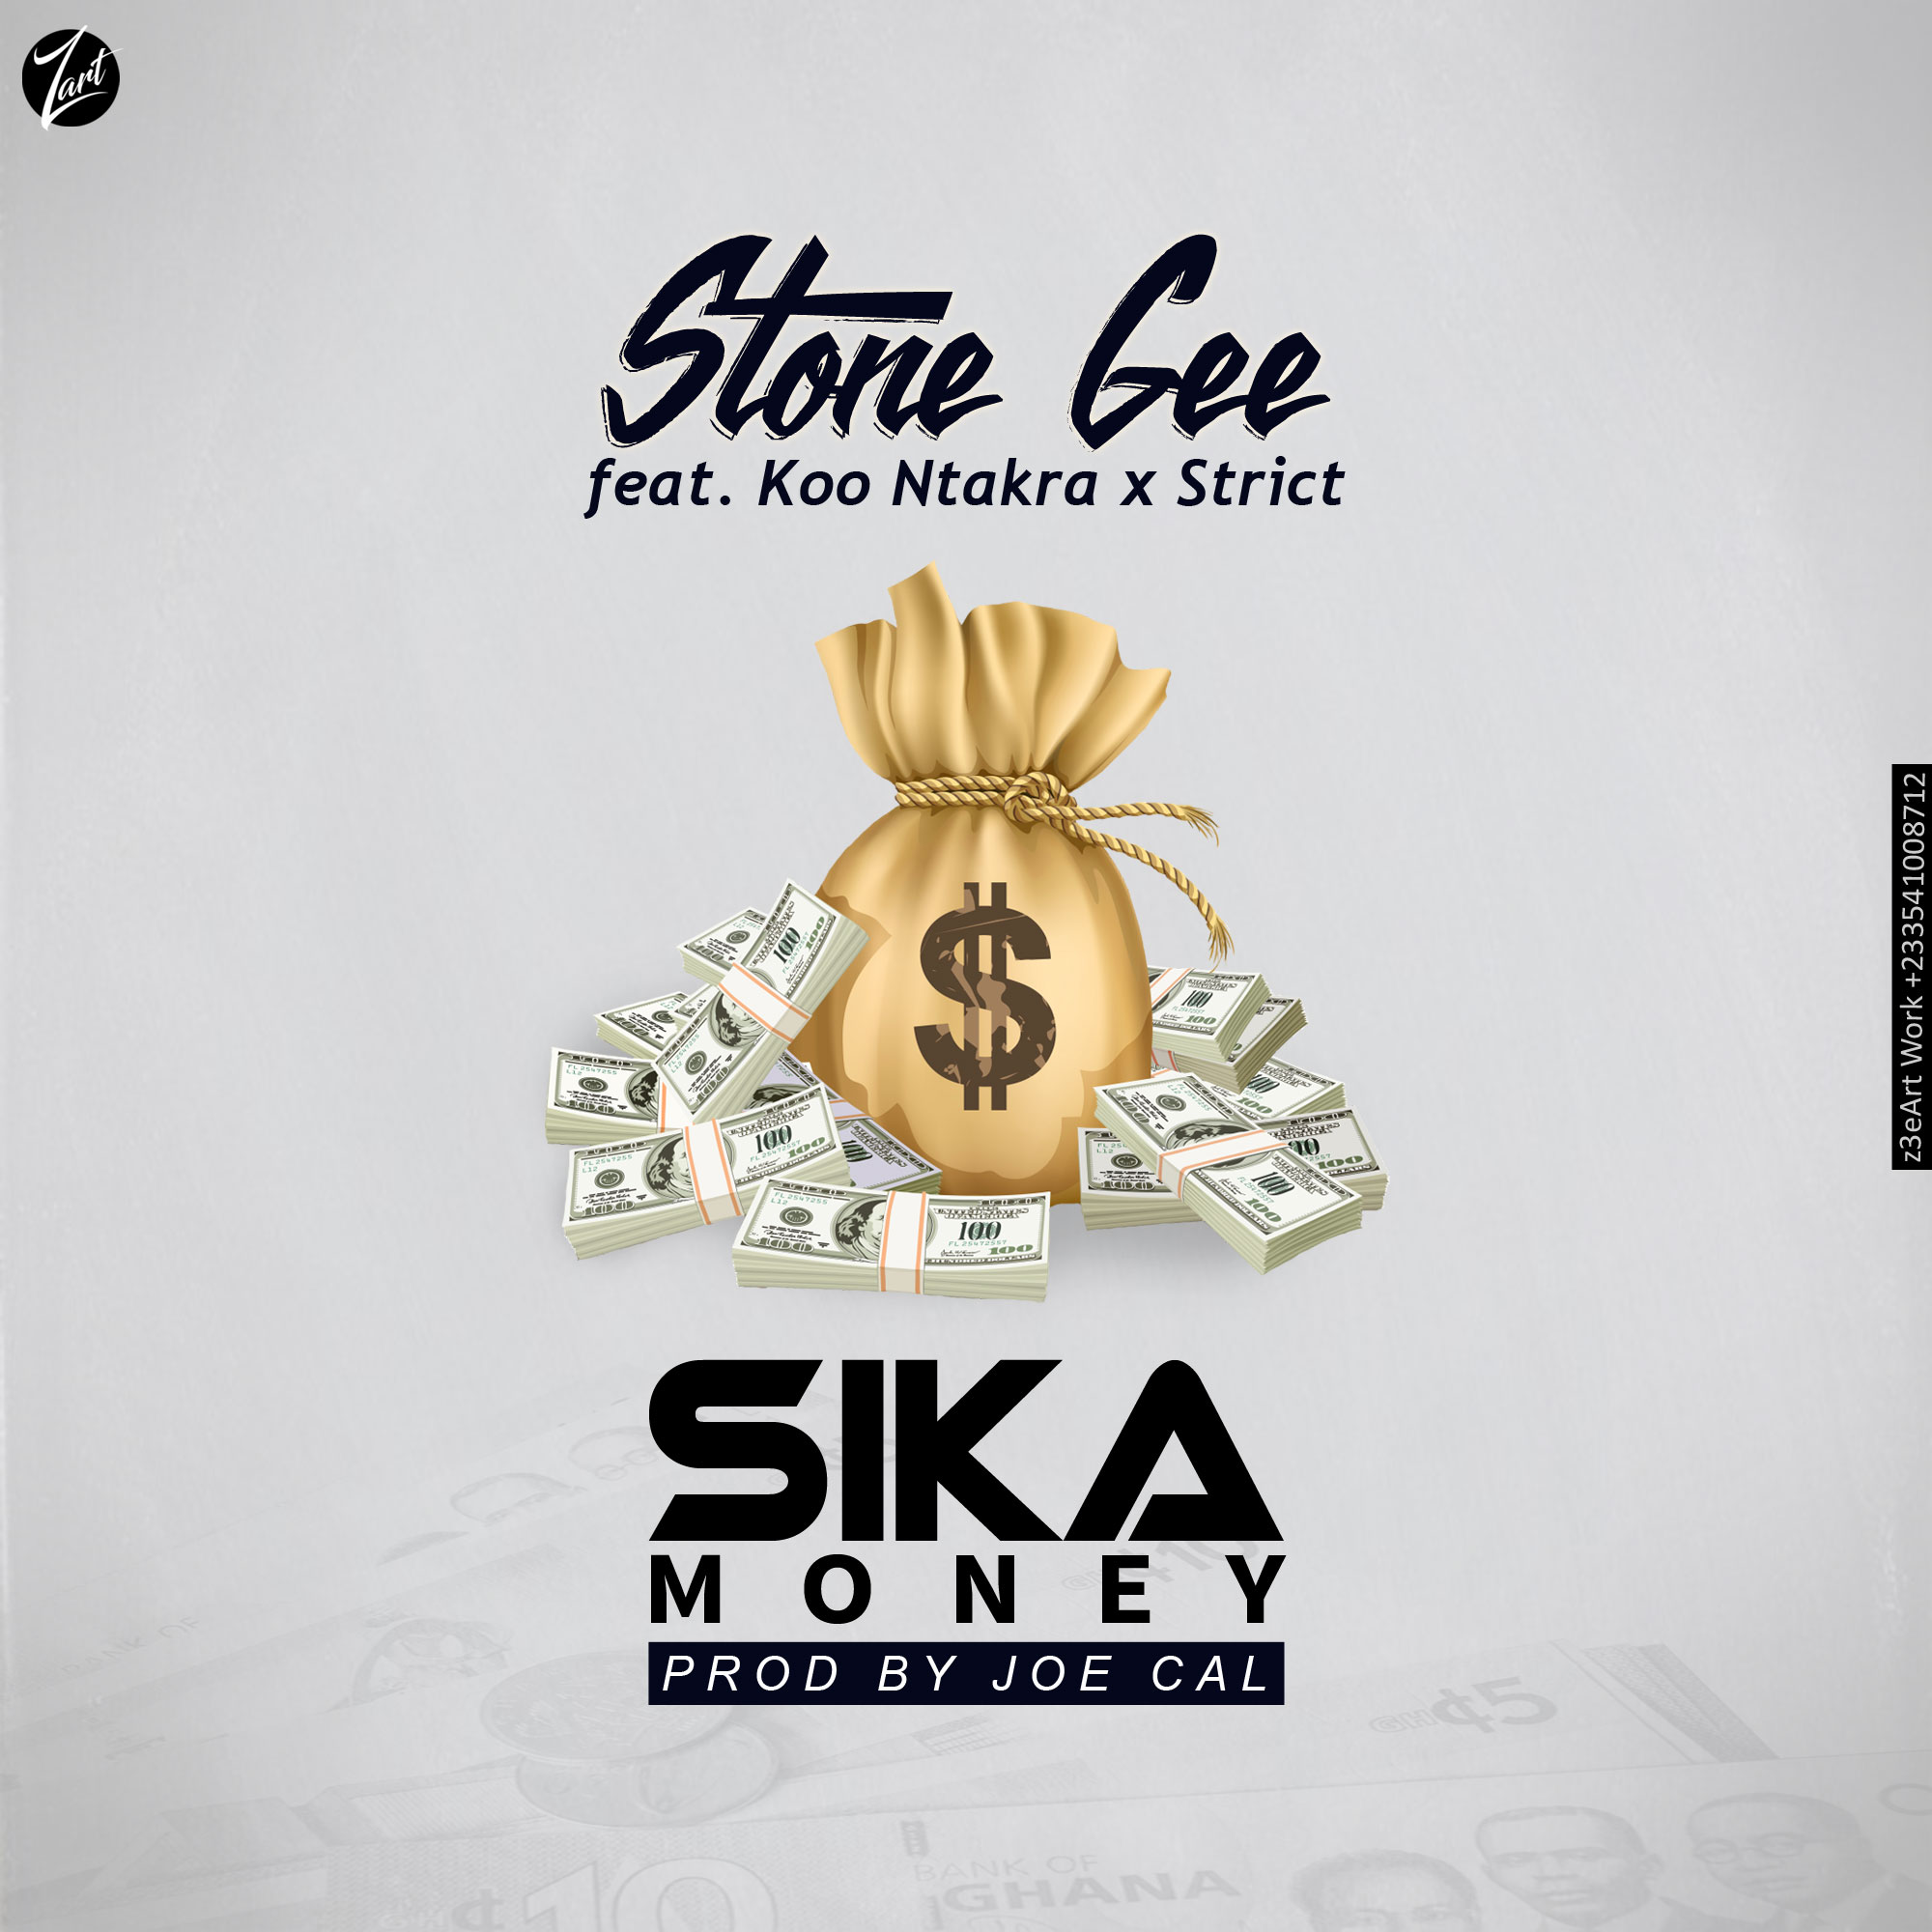 Stone Gee Feat. Koo Ntakra x Strict – Sika Money(Prod by Joe Cal)